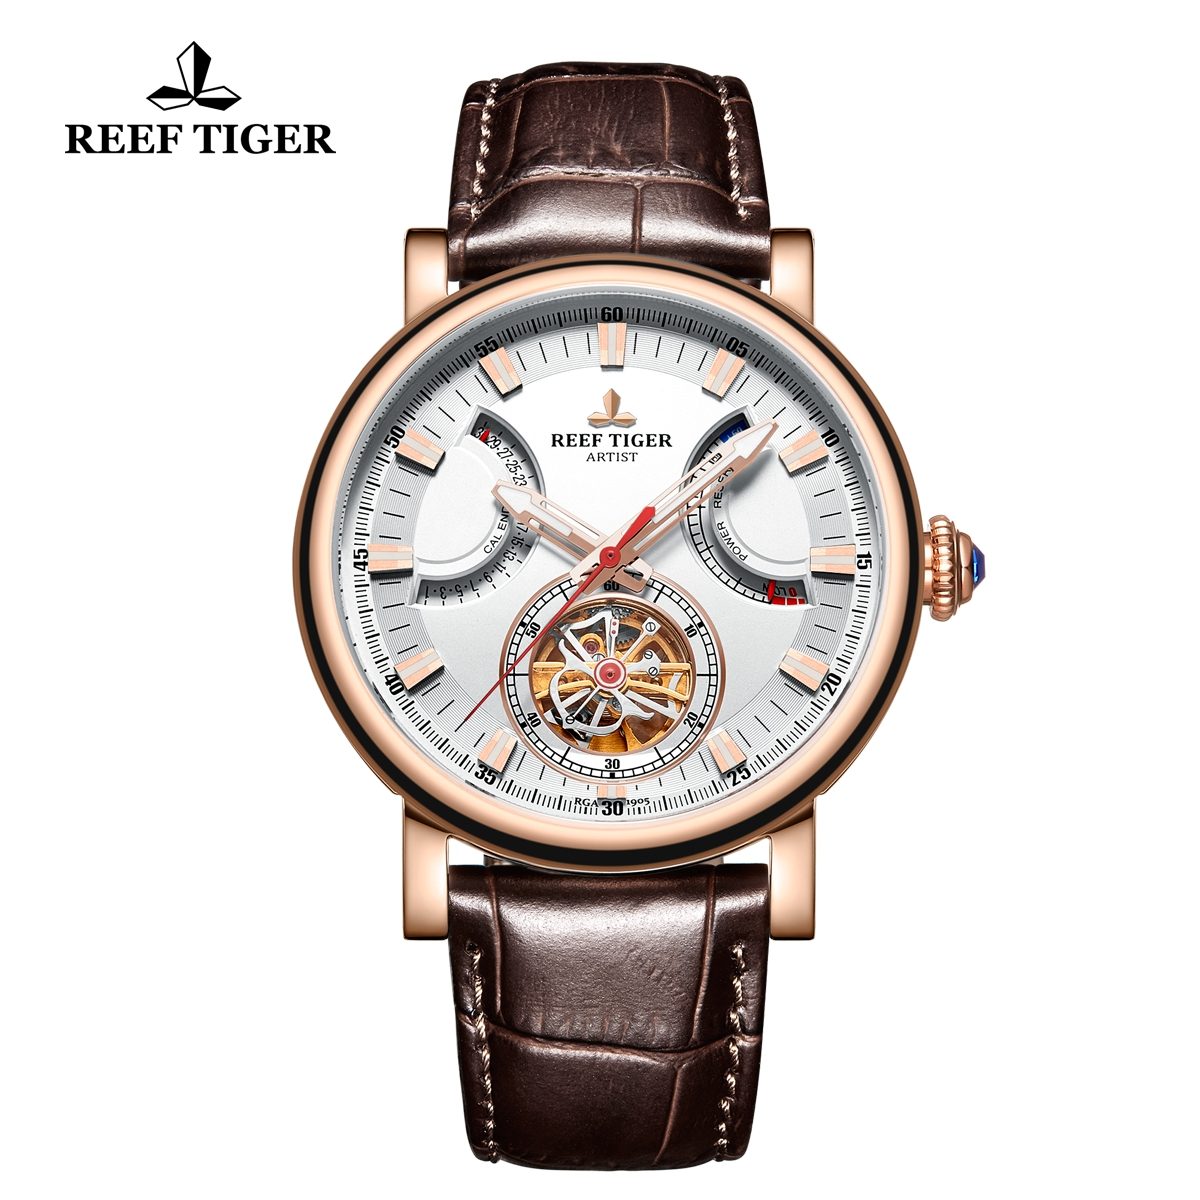 Reef Tiger Artist Photographer Rose Gold Leather Strap White Dial Tourbillon Automatic Watch RGA1950-PWW